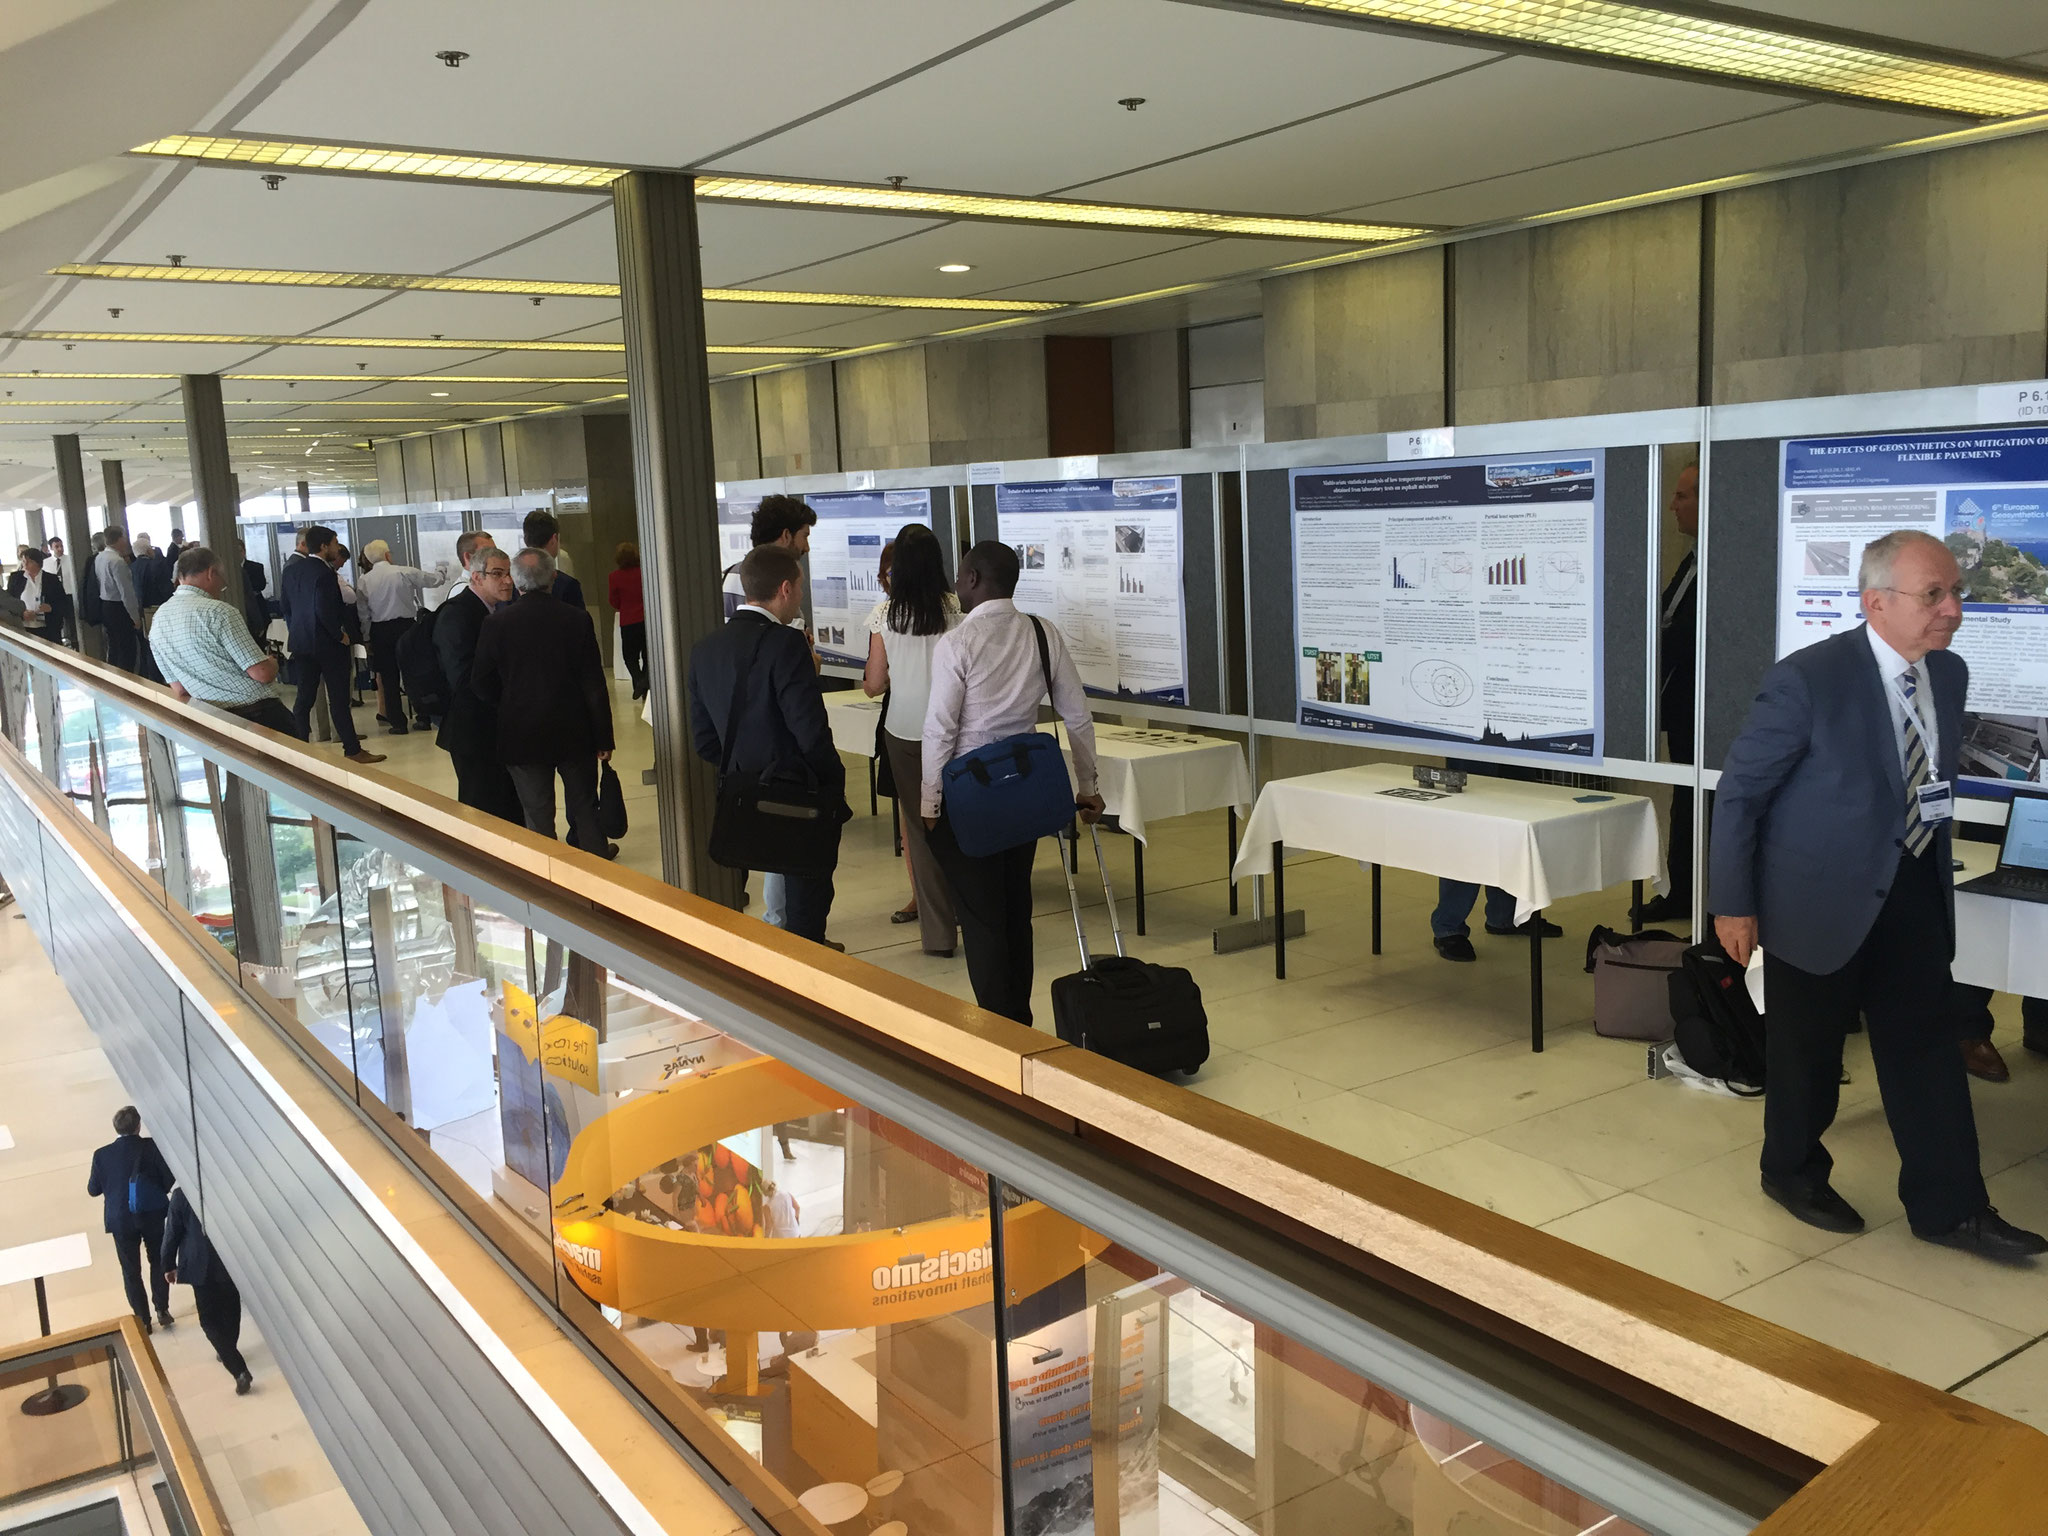 Impression of the Poster Session at the E&E Congress 2016 in Prague